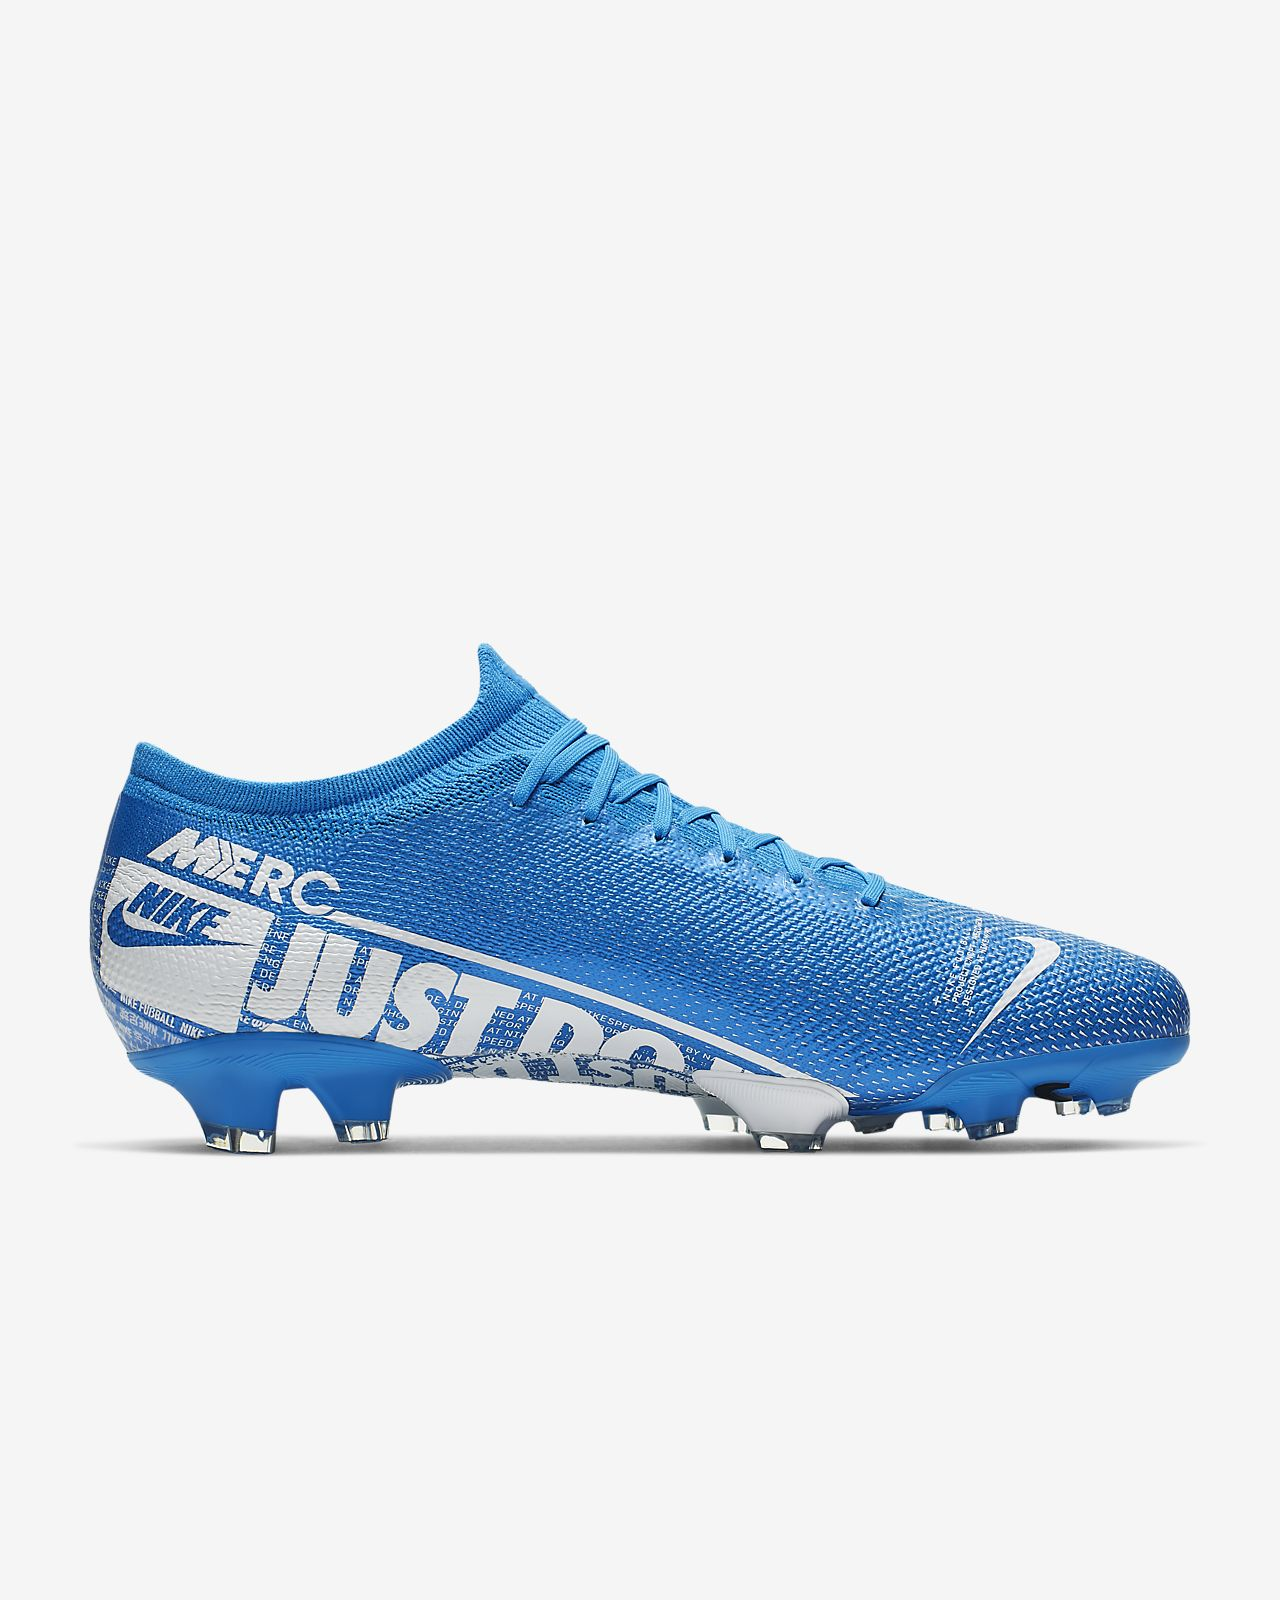 online shop authentic quality popular brand Nike Mercurial Vapor 13 Pro FG Firm-Ground Soccer Cleat